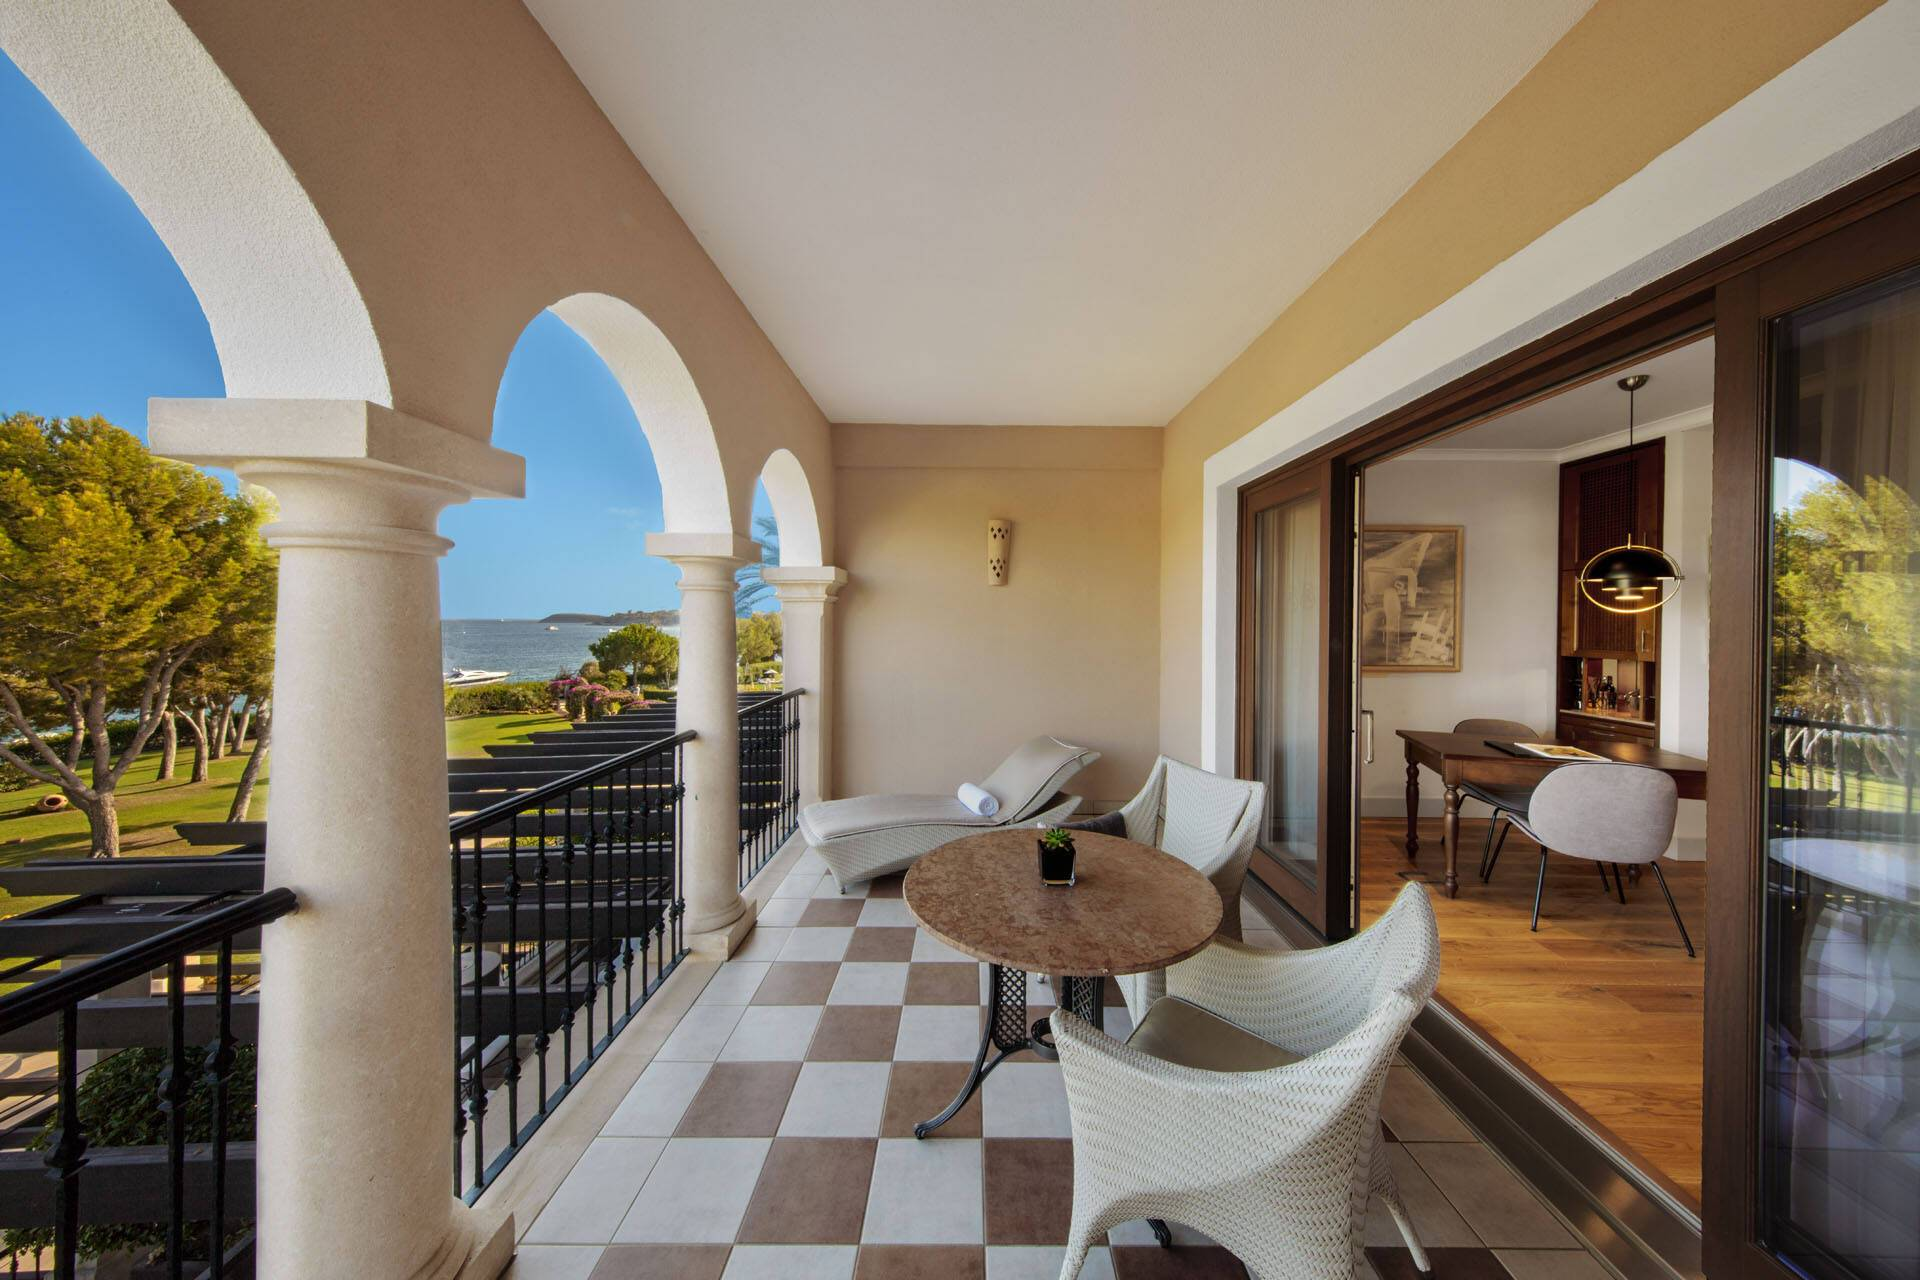 St Regis Mardavall Resort Majorque Junior Suite